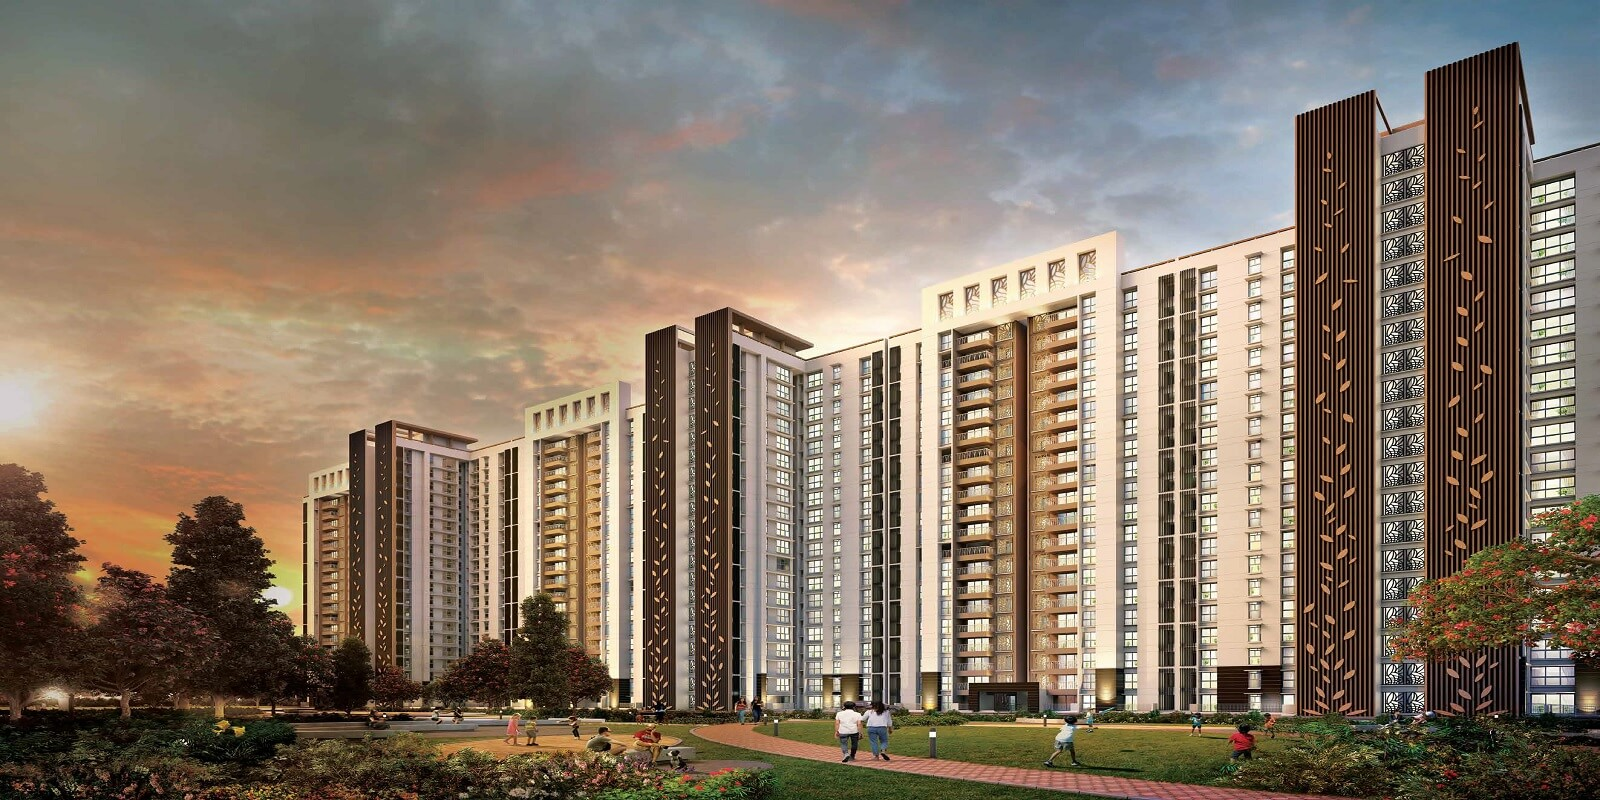 lodha upper thane tiara d project large image16